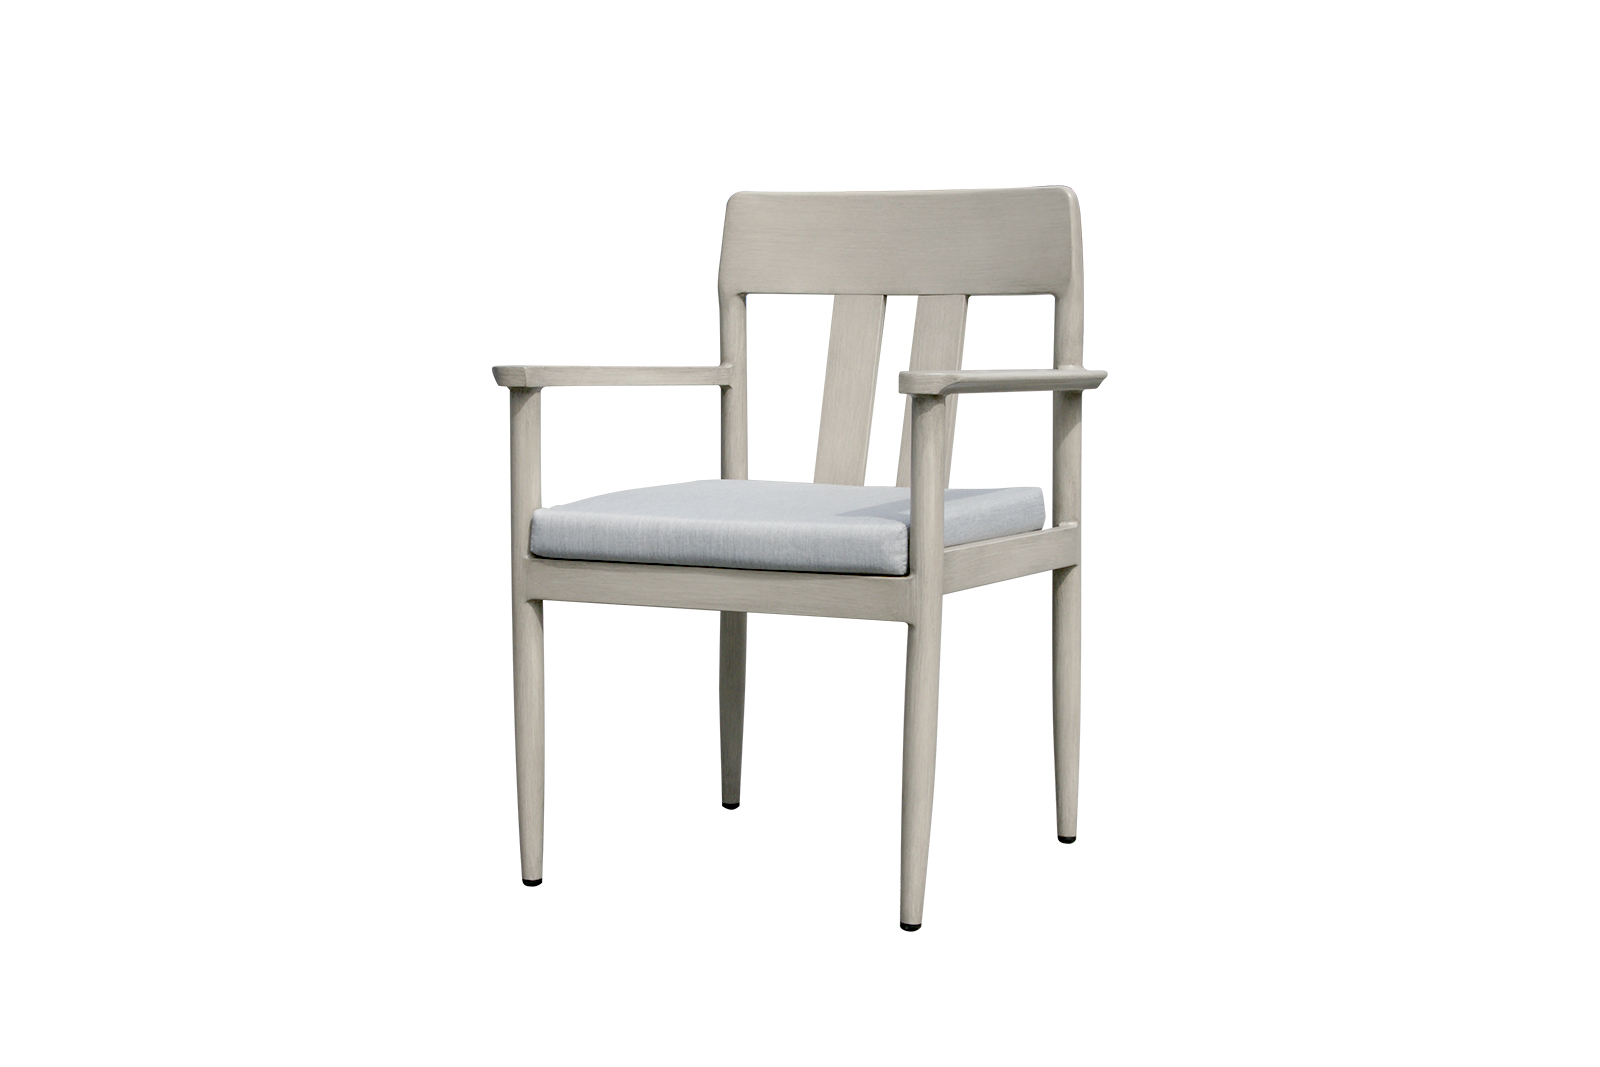 Polanco dining arm chair with idol frost cushion.